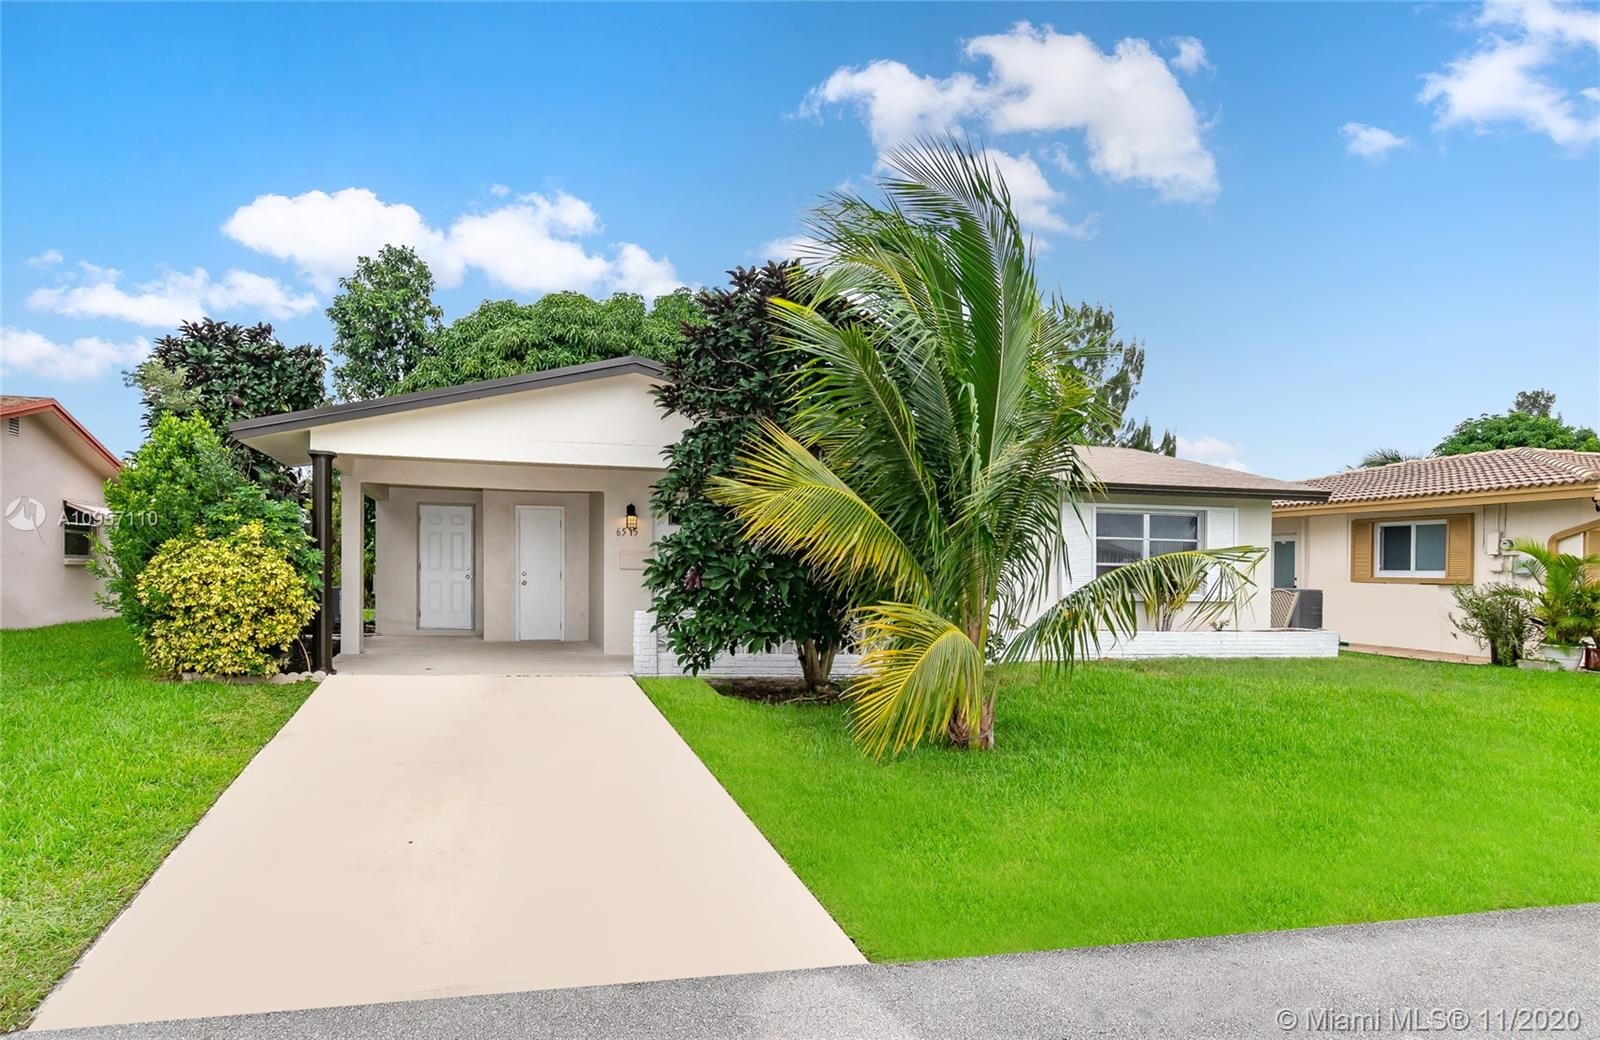 Amazing fully remodeled water-view home 2/2 in Mainlands of Tamarac Lakes for 55 years and older.  Spacious living/dining.  Eat-in wood kitchen with granite countertops, top of the line stainless steel appliances with pass thru Florida room.  Title throughout the house. Upgraded bathrooms. Walking closet.  Large terrace.  Attached carport with storage closet.  Tranquil canal view.  Association states HOPA.  Community pool and clubhouse.  Pet friendly.  No lease 2 years.  Walking distance to shops, banks, fine dining, bus routes and throughfares, and more.  Three minutes driving from Florida Turnpike and ten minutes driving from Sawgrass Express Way. Ease to show!!